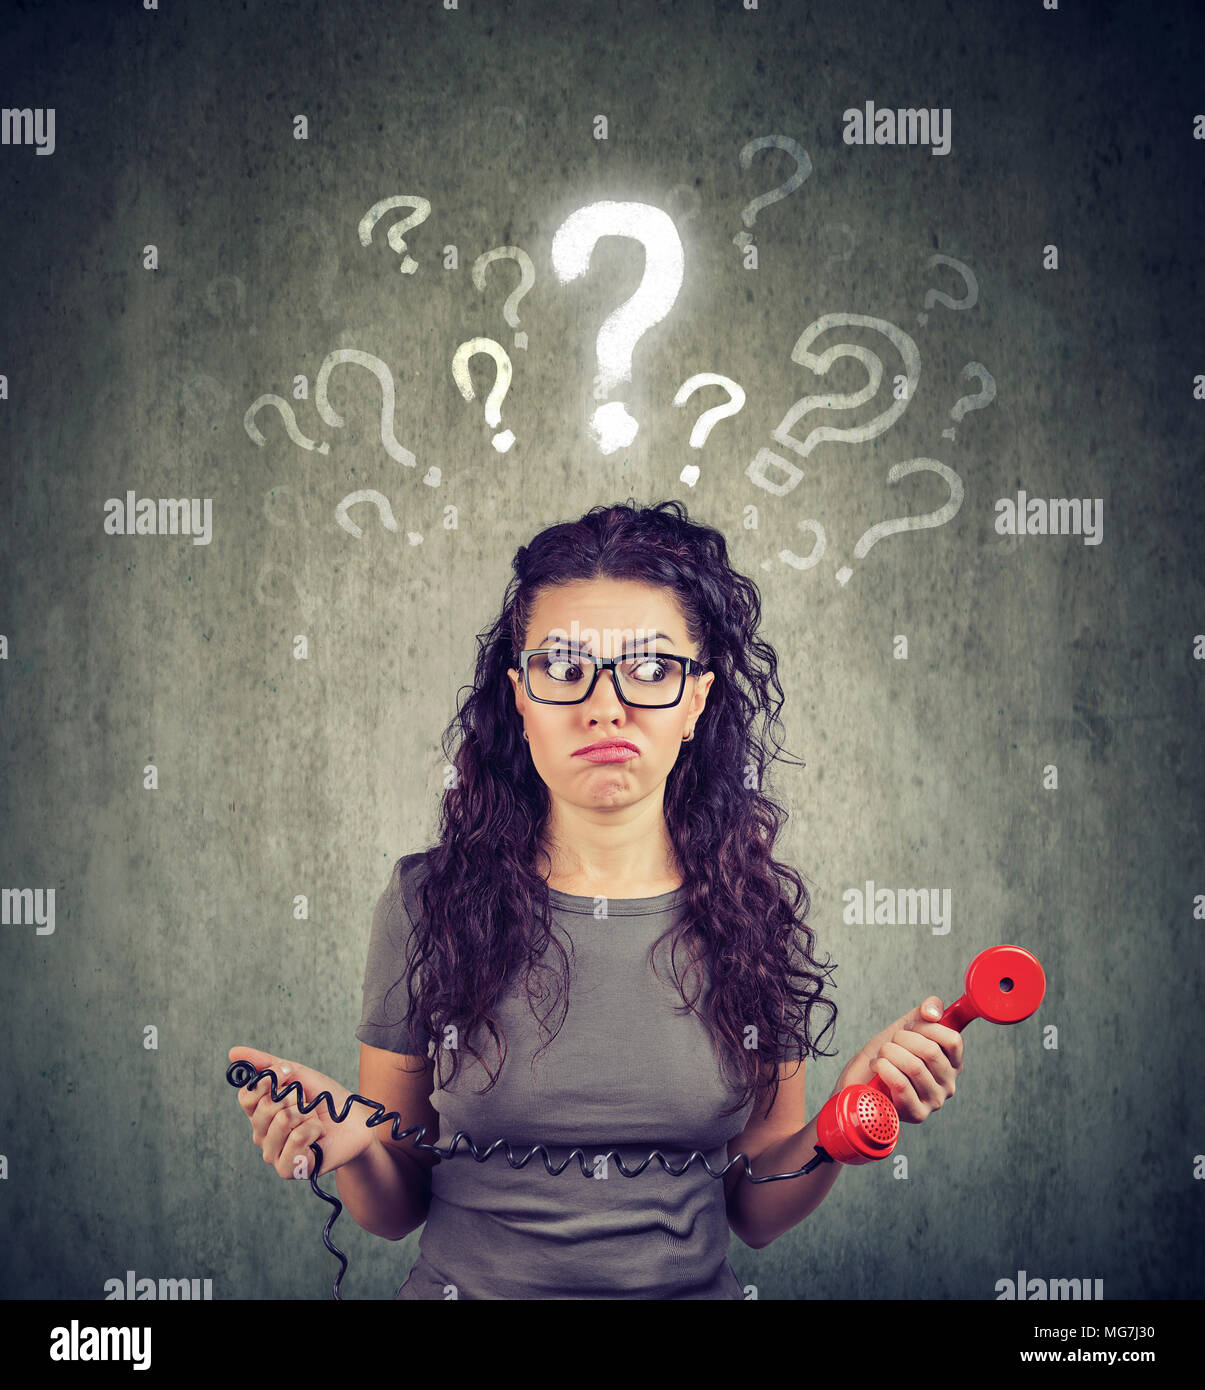 Misunderstanding and distant call. Upset worried confused woman talking on a phone has many questions isolated on gray background. - Stock Image